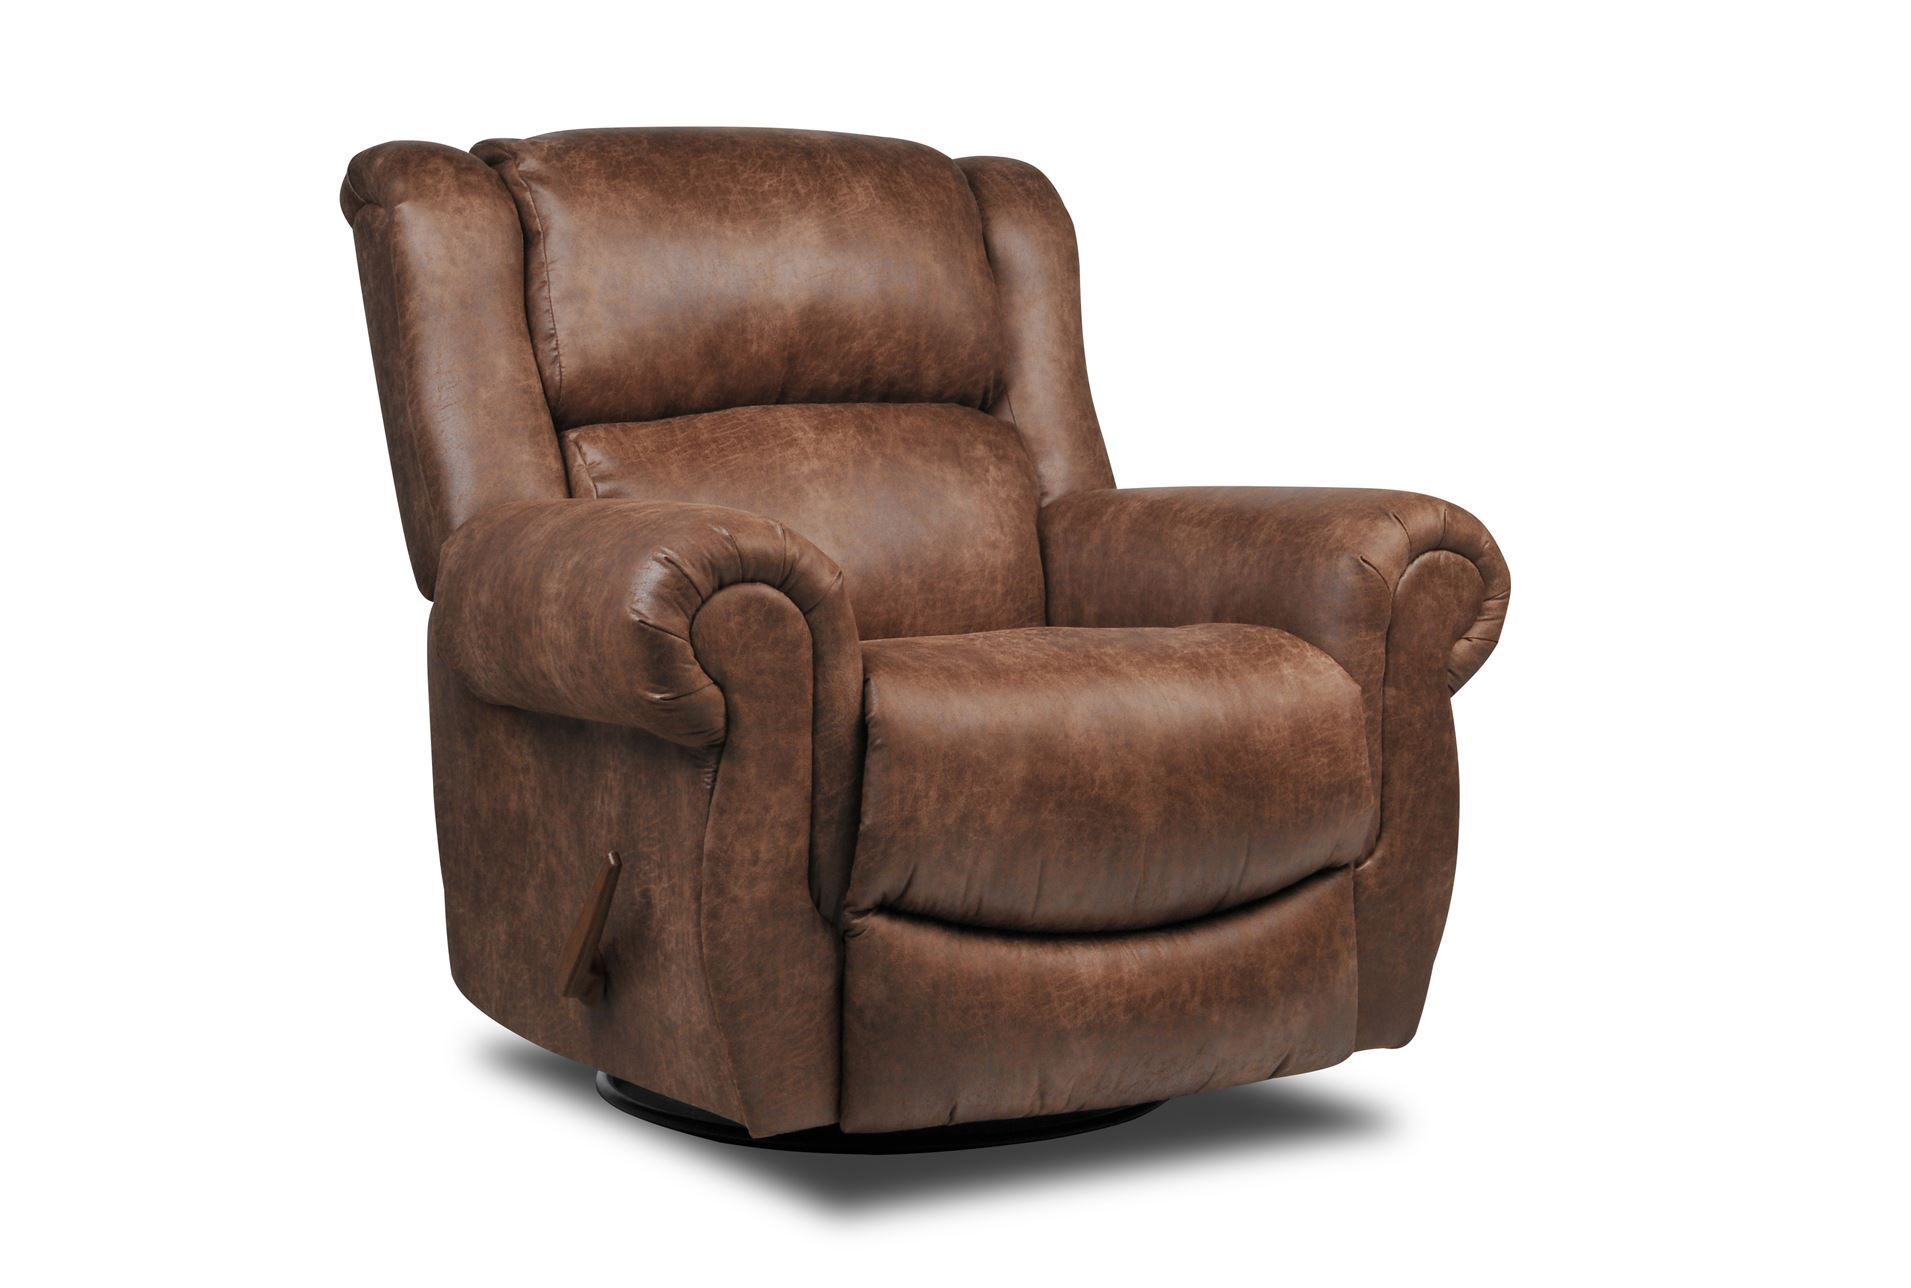 Living Spaces Recliners : Christopher Swivel Rocker Recliner - Living Spaces